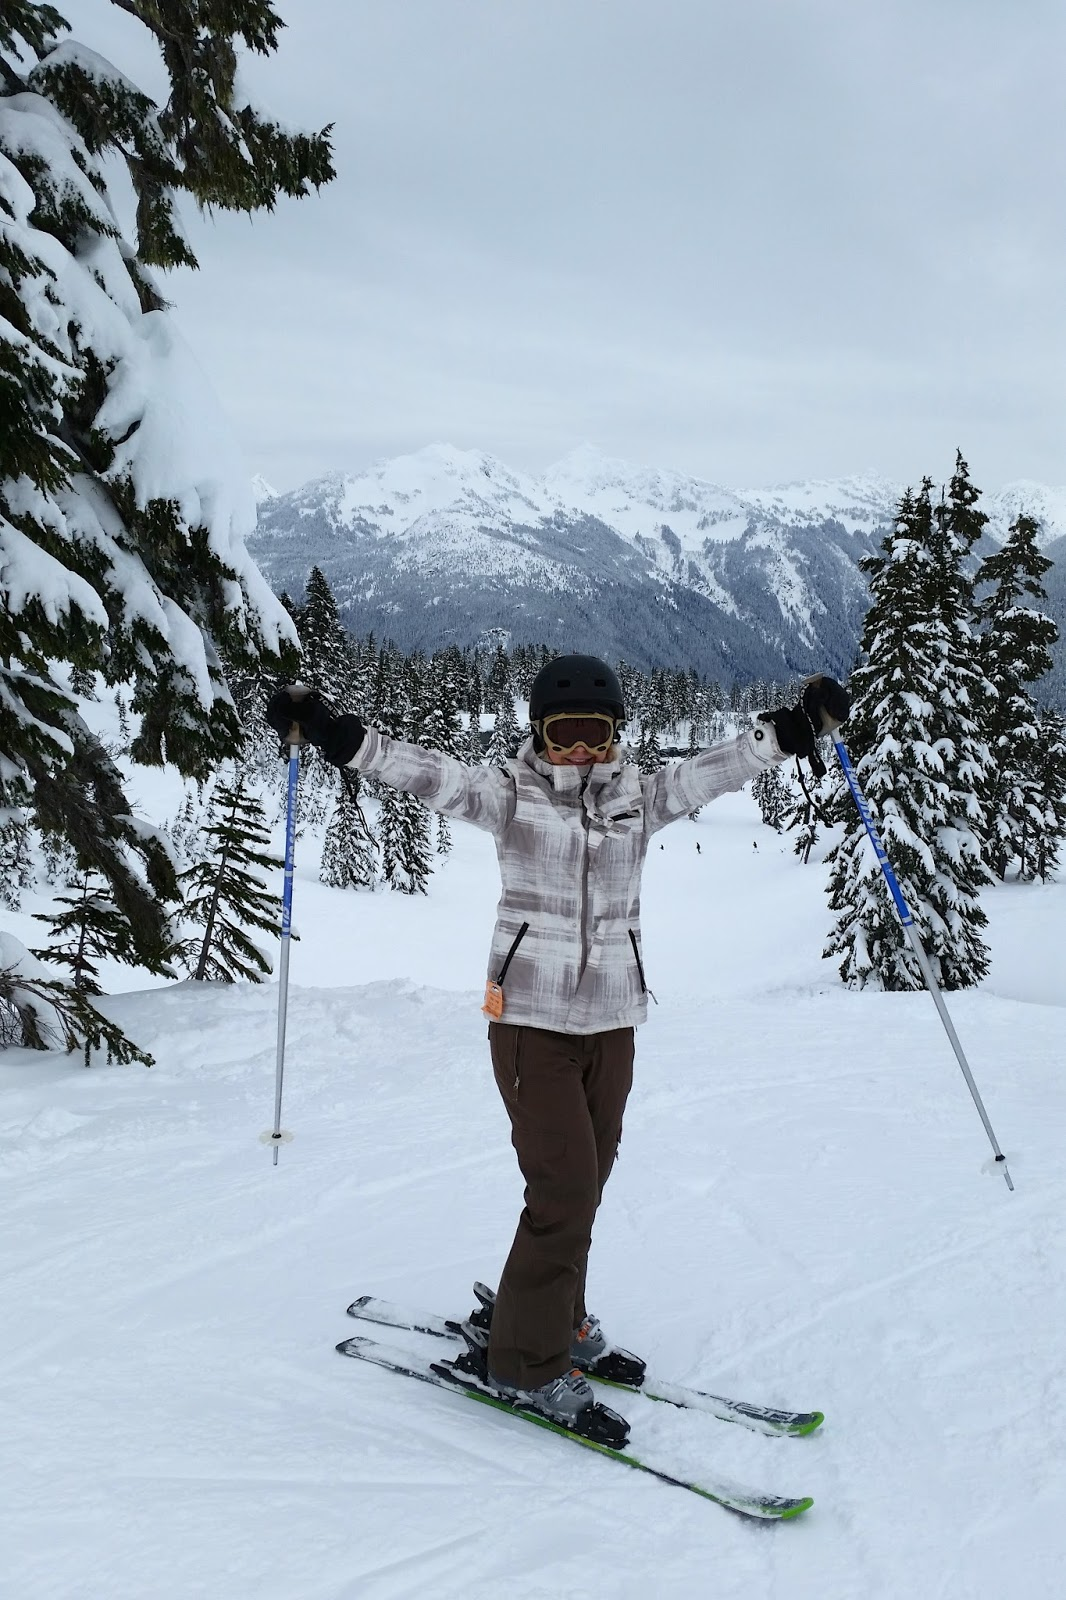 a women skiing poses for picture at top of mountain